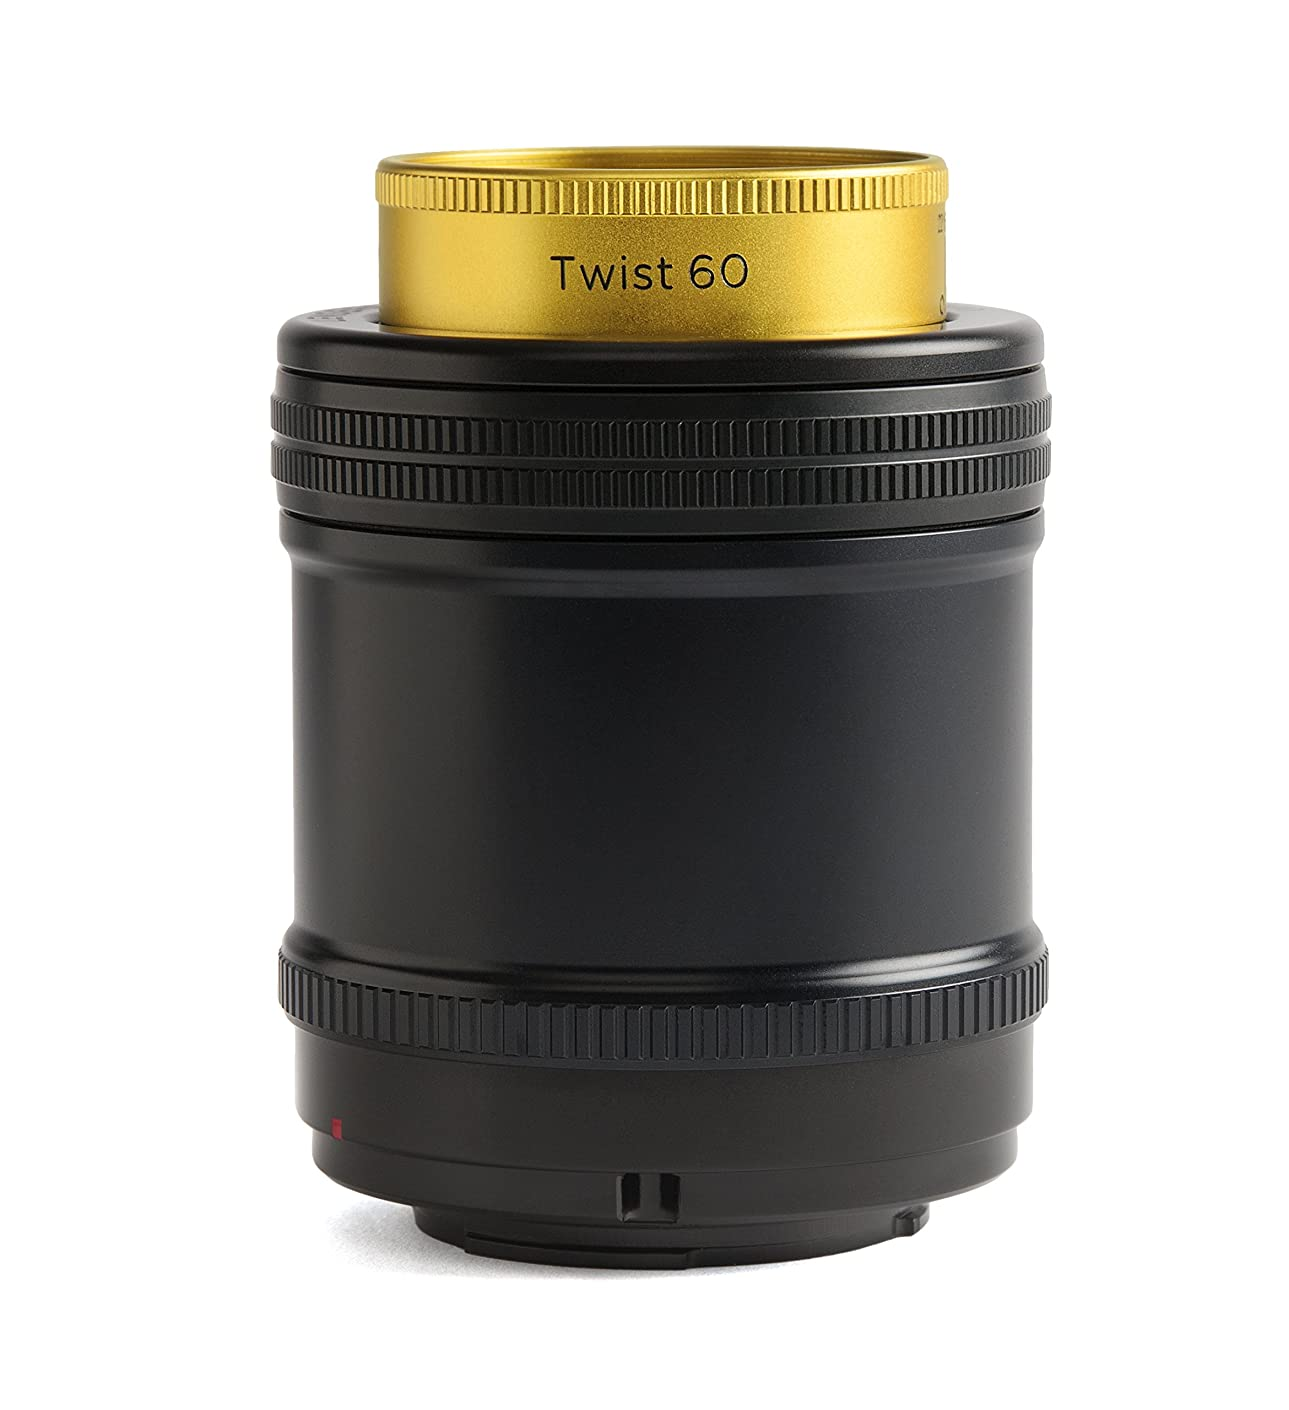 Lensbaby lb 7聽掳C Twist 60聽EF Lens with Case for Connection